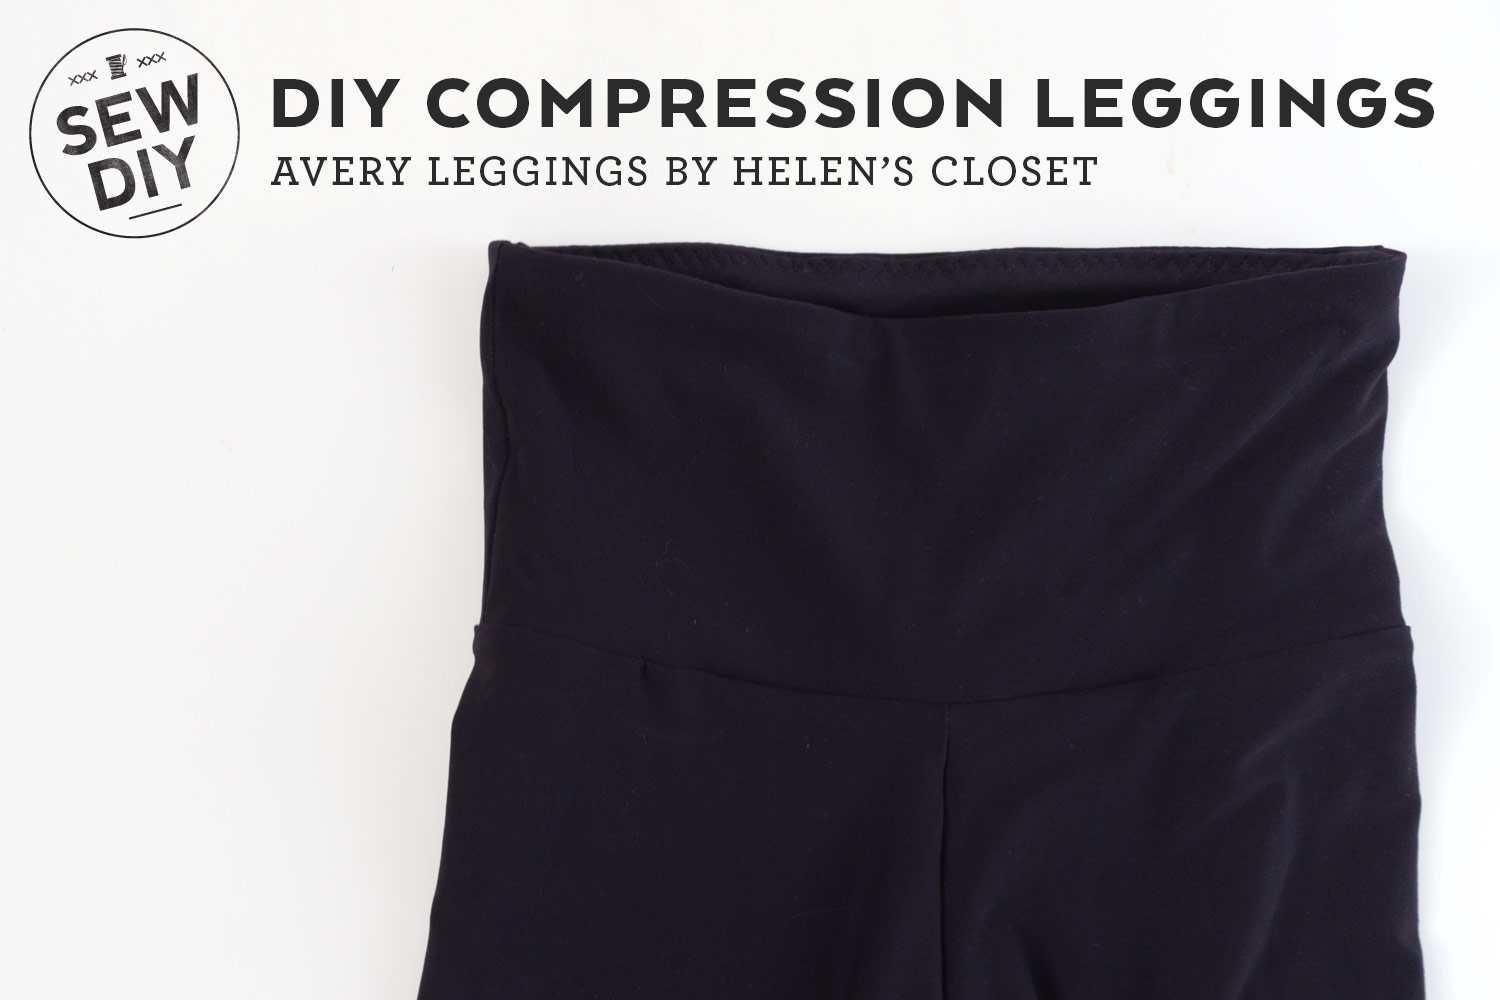 DIY Compression Leggings – Review of the Avery Leggings pattern by Helen's Closet | Sew DIY